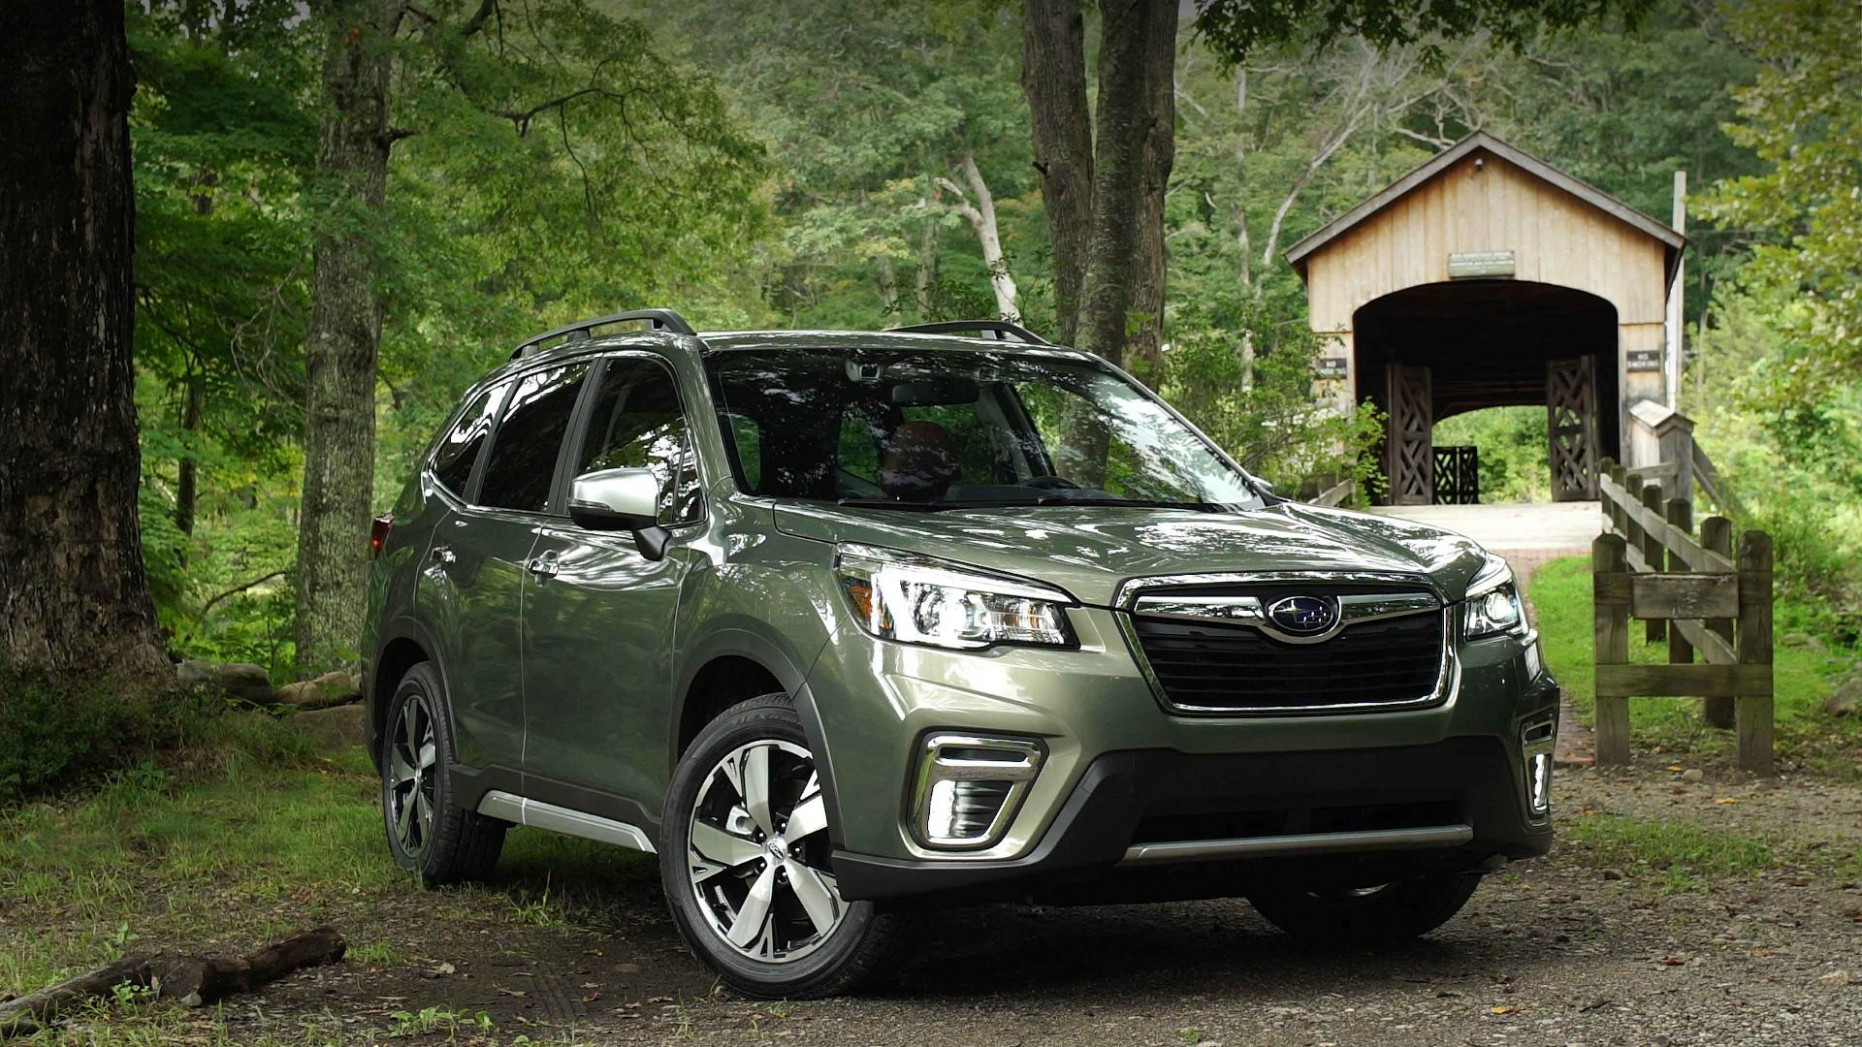 8 Subaru Forester Improves Upon a Good Thing - Consumer Reports